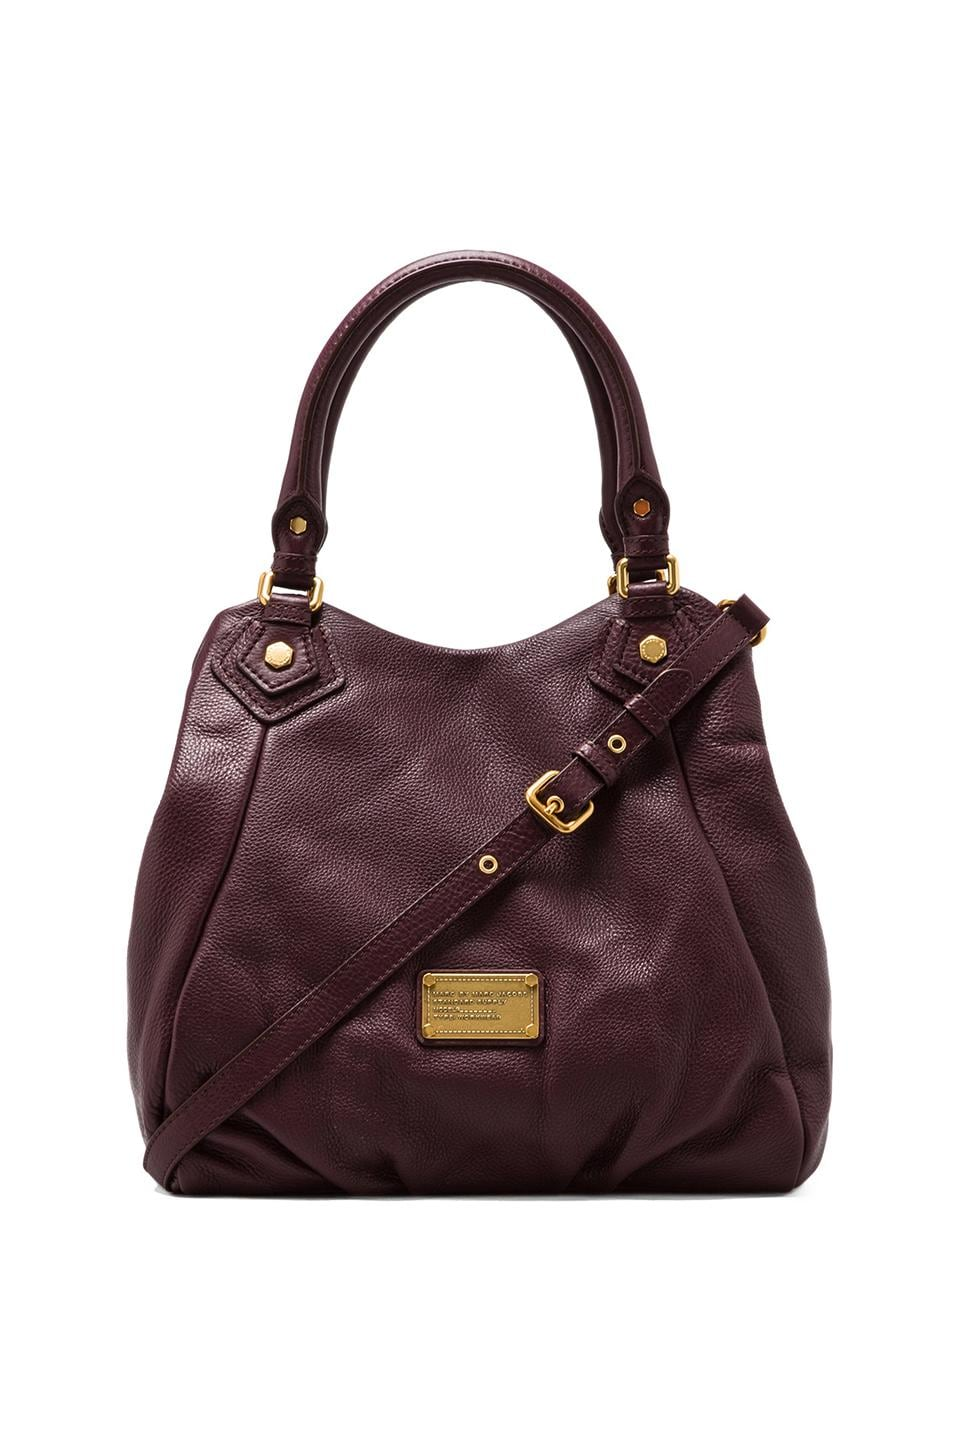 Marc by Marc Jacobs Classic Q Fran Shoulder Bag in Cardamom Brown